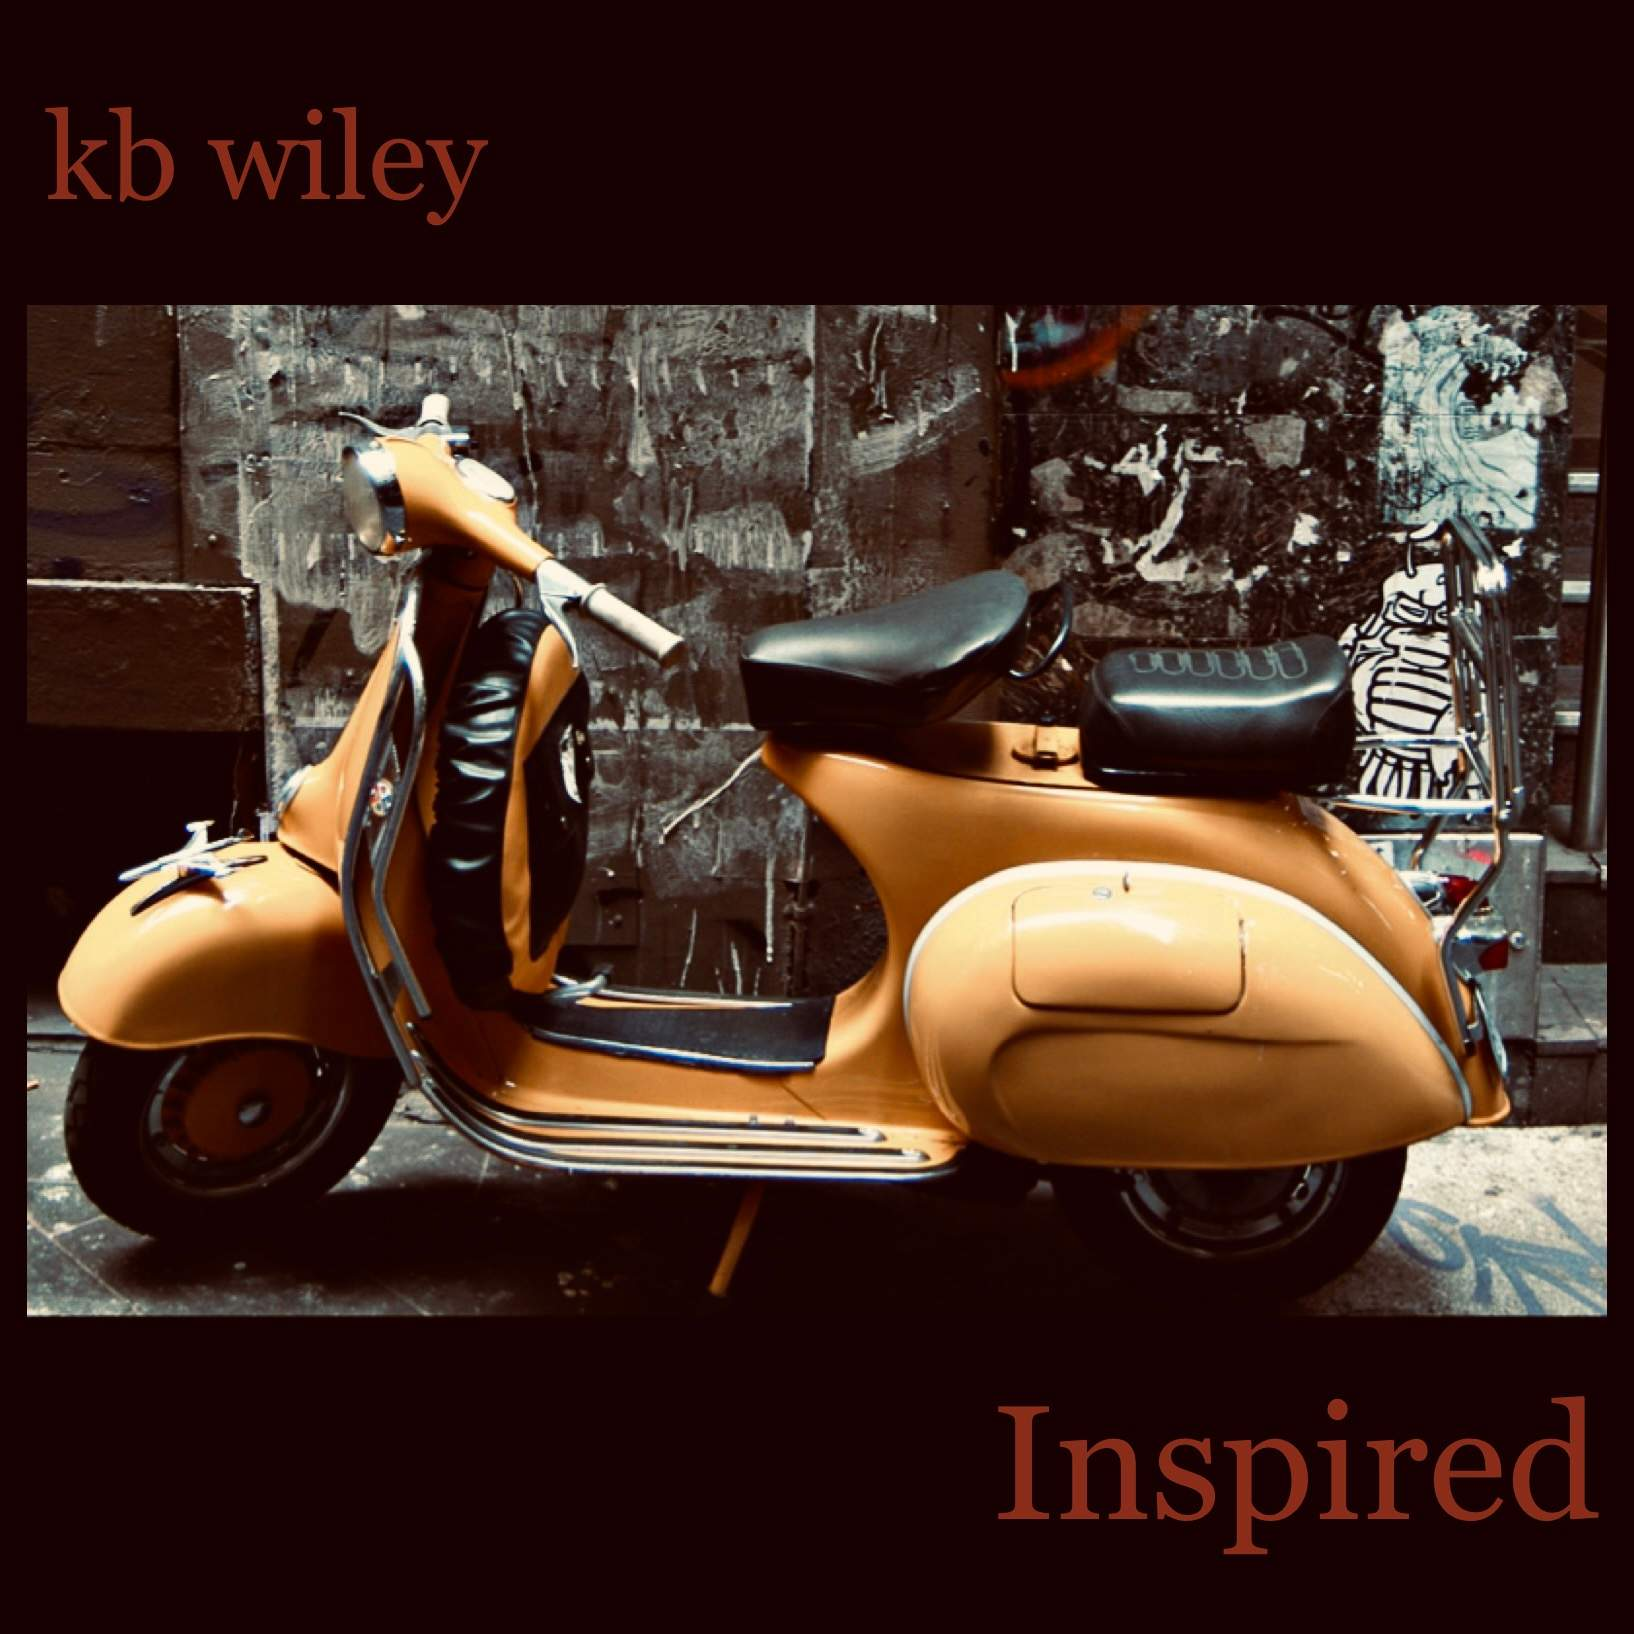 """Releasing Brand New Single Titled """"Inspired"""": This is kb wiley"""